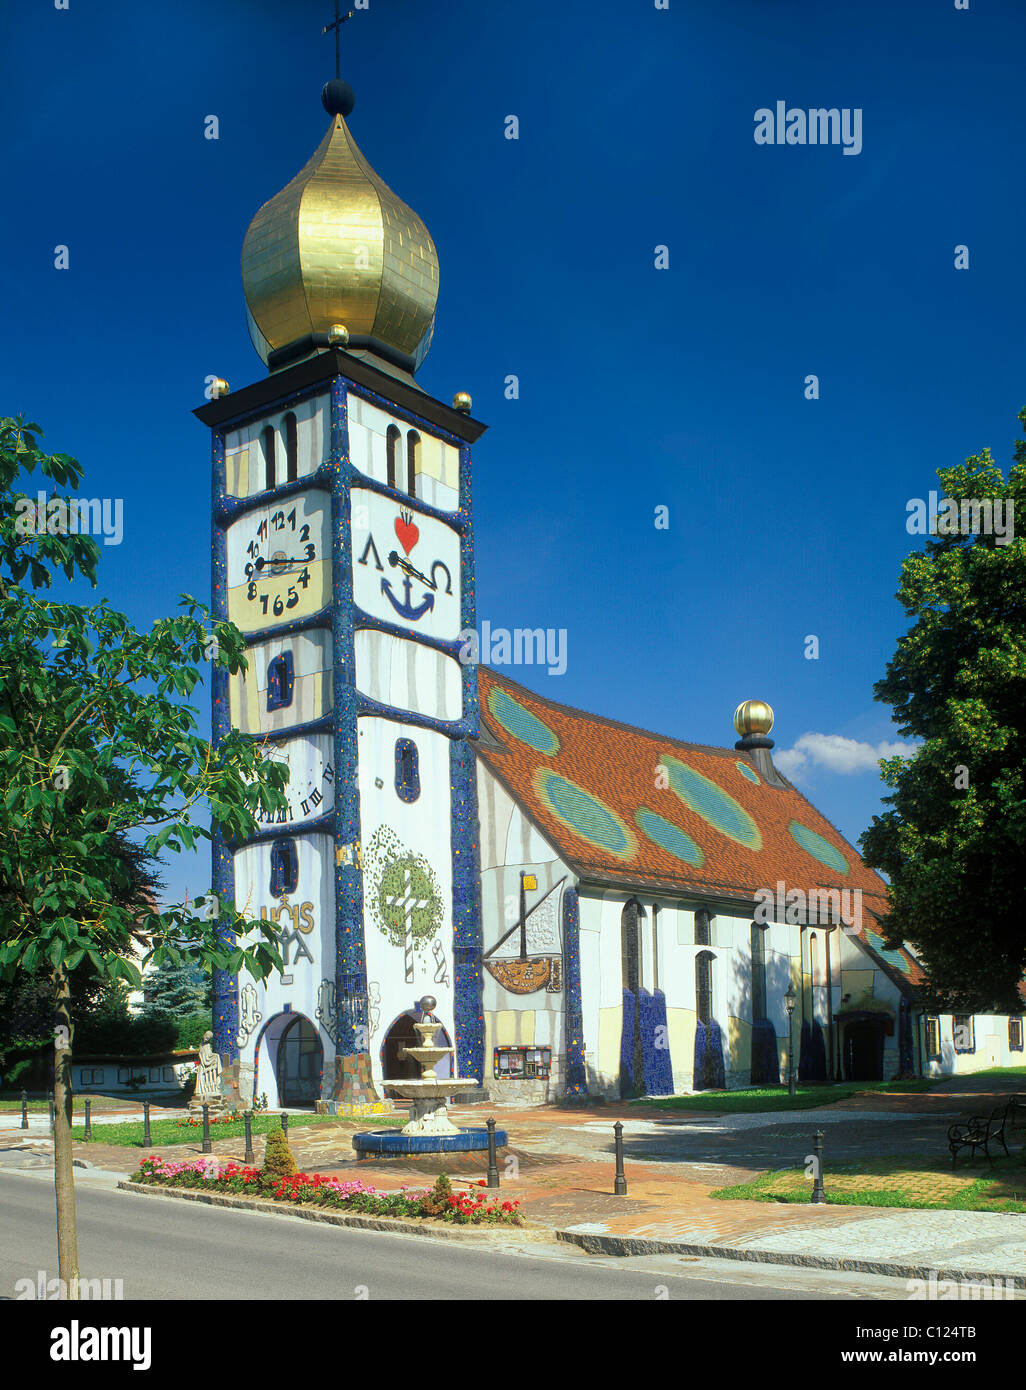 Parish church Saint Barbara, 1987-1988, by Friedensreich Hundertwasser, Baernbach, Styria, Austria, Europe - Stock Image